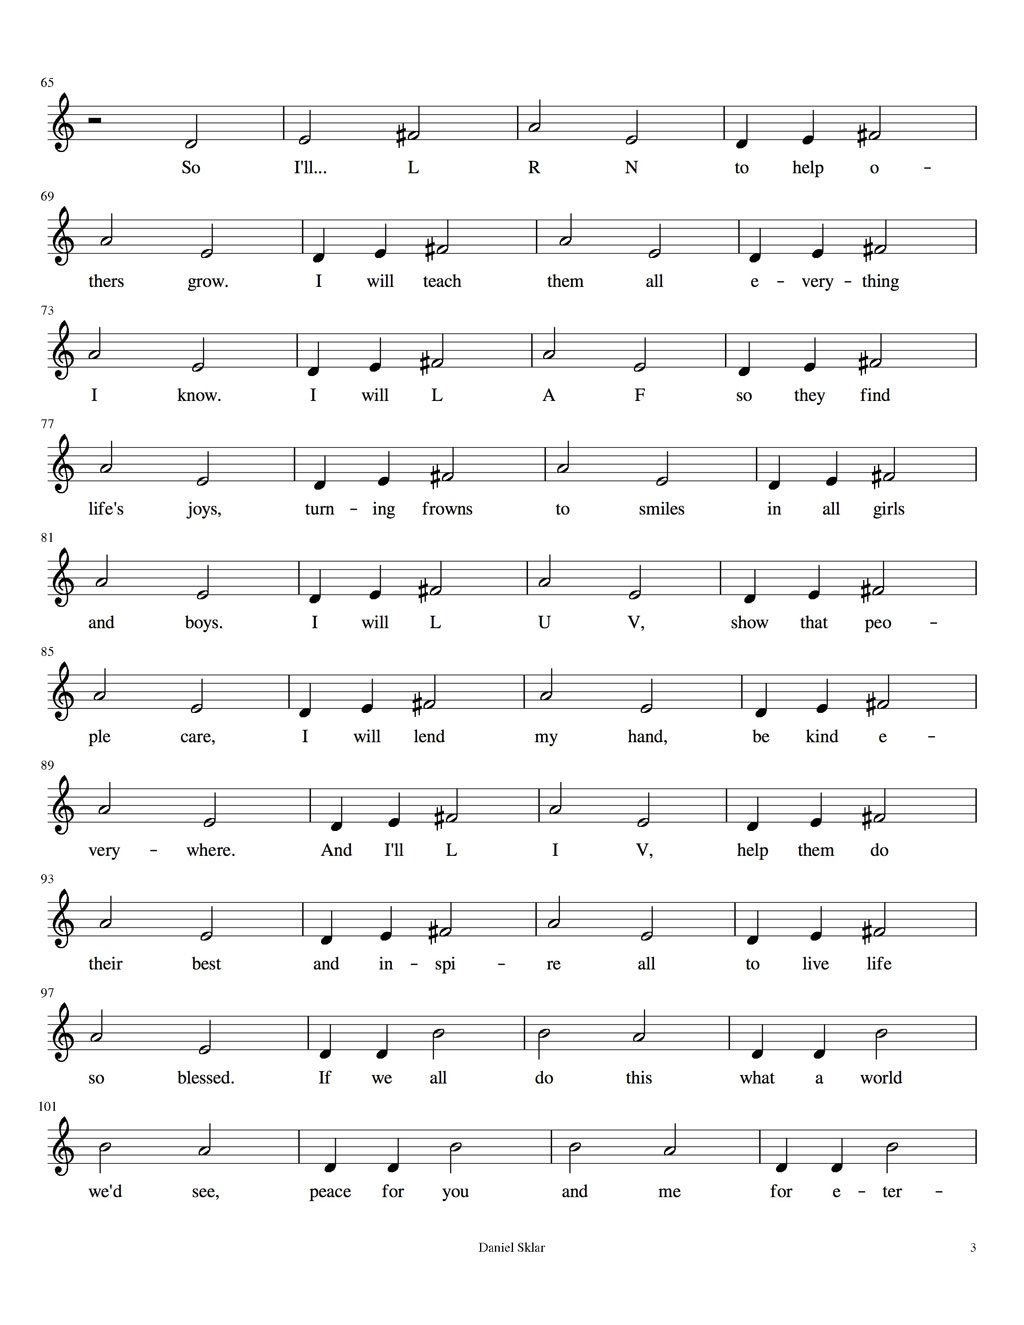 Song for LYF music score lyrics page 3 LRN LAF LUV LIV LYF Learn Laugh Love Live Life